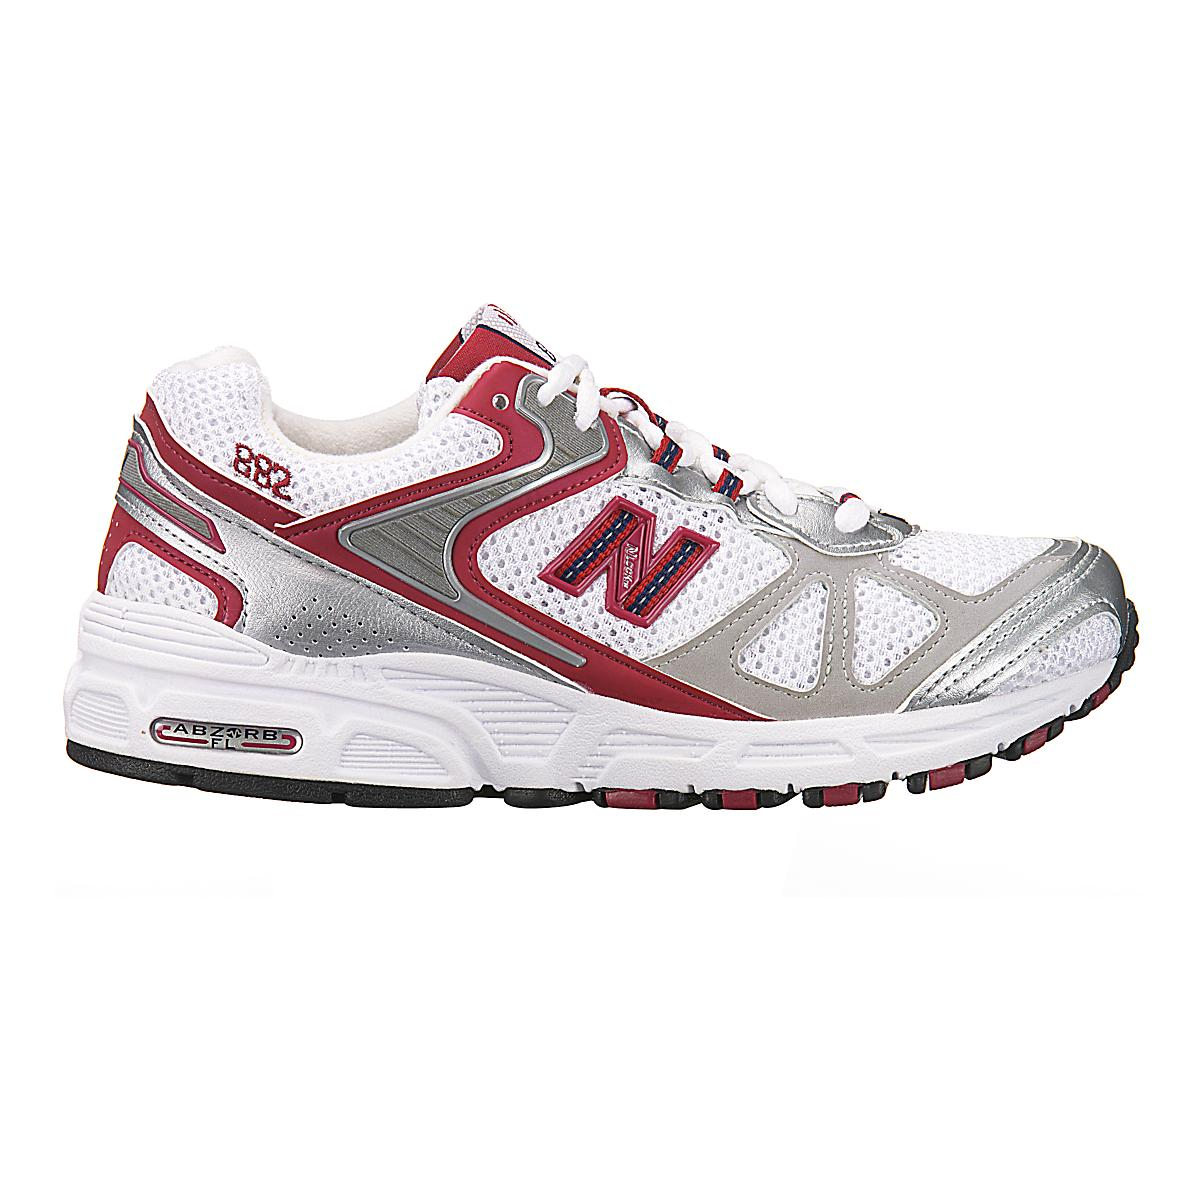 Plausible Felicidades pivote  Womens New Balance 882 Running Shoe at Road Runner Sports